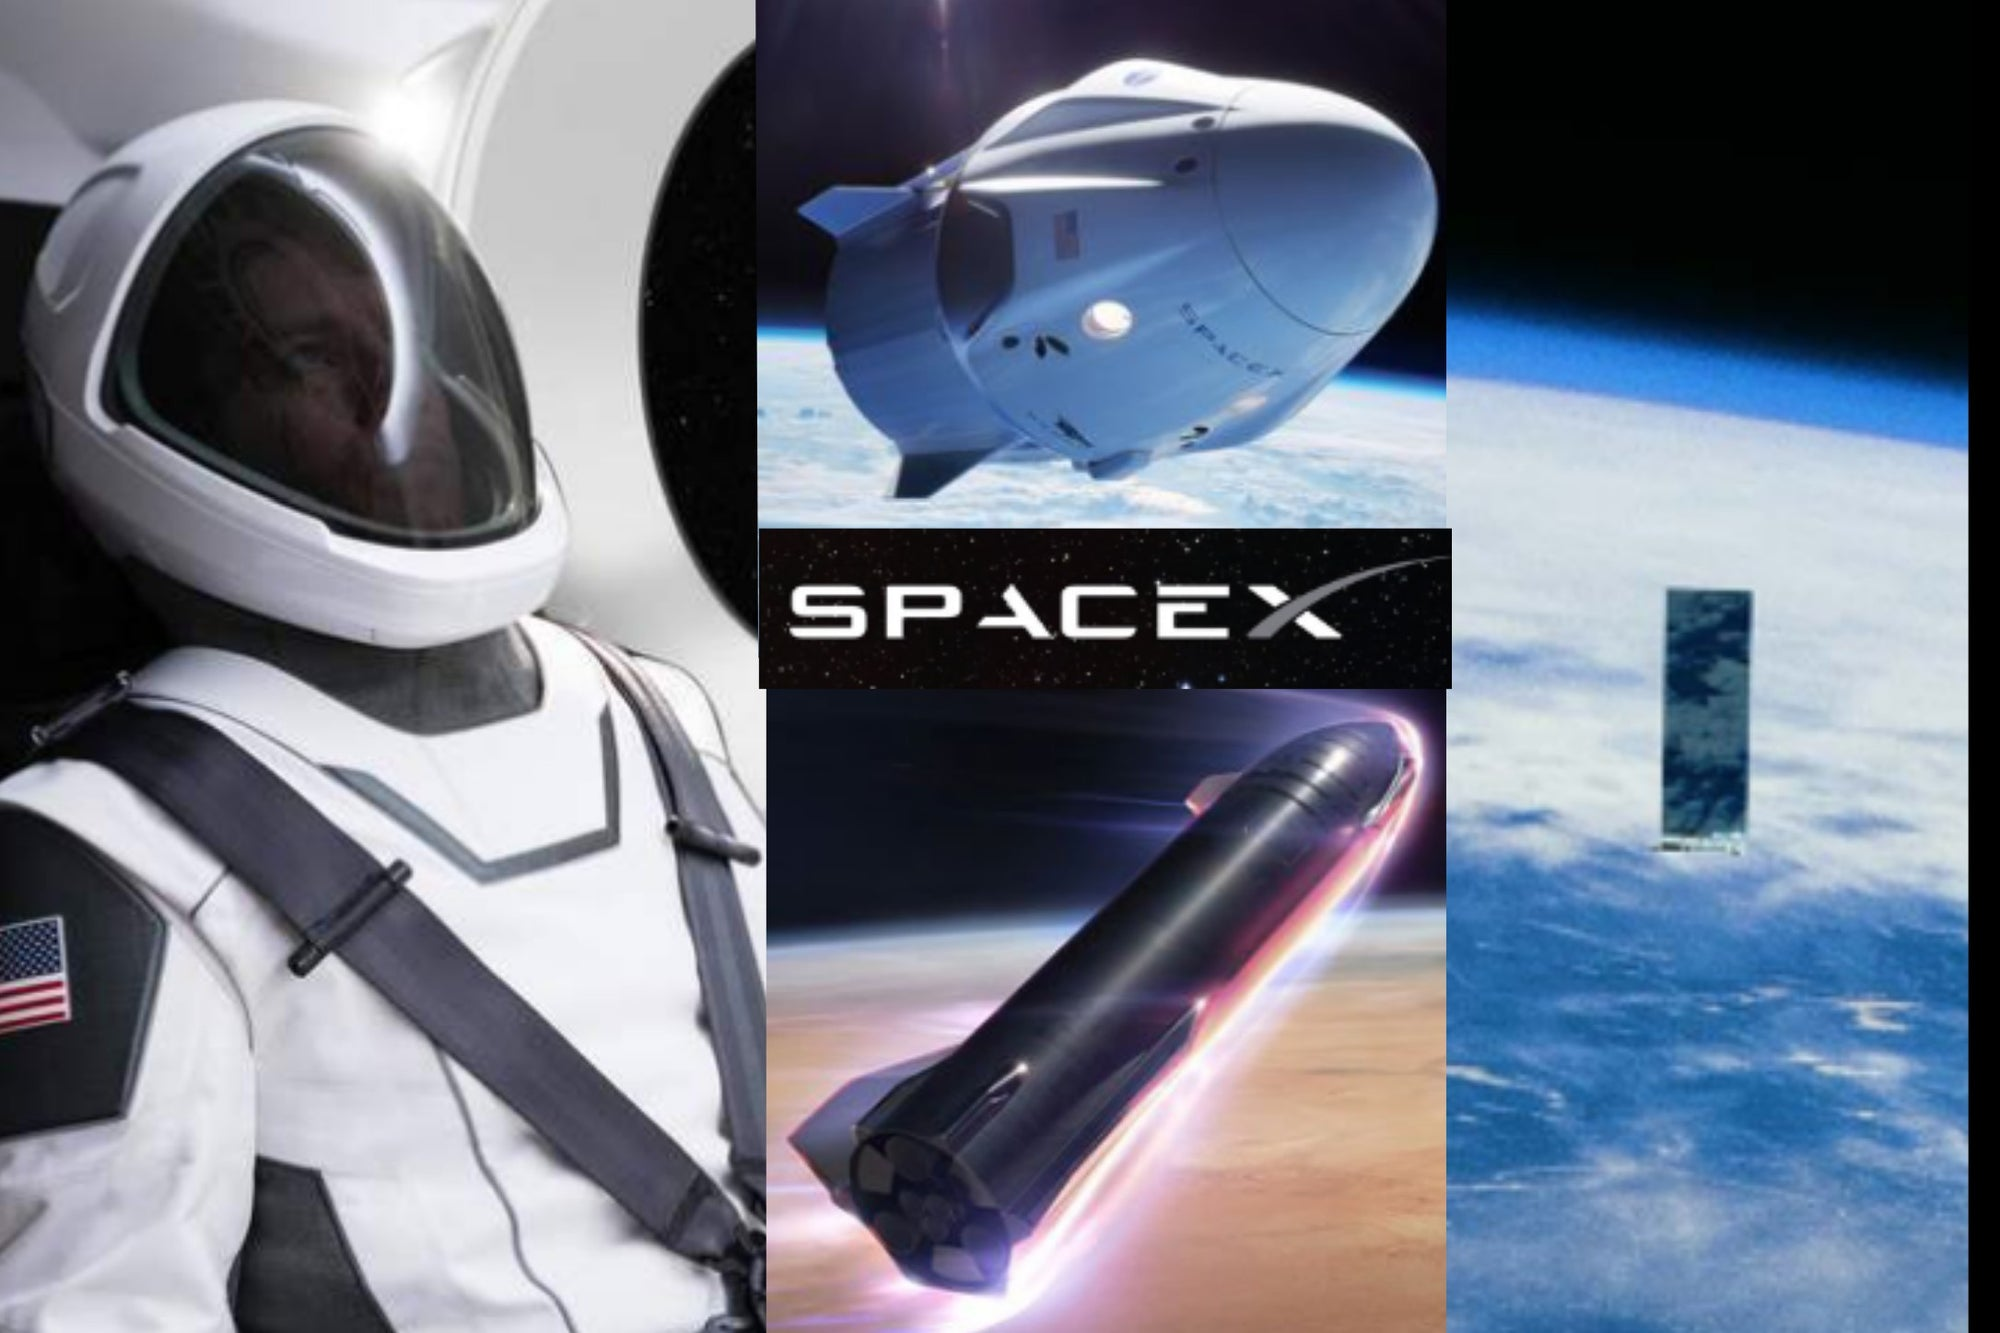 2020 will be a very exciting, active year for SpaceX